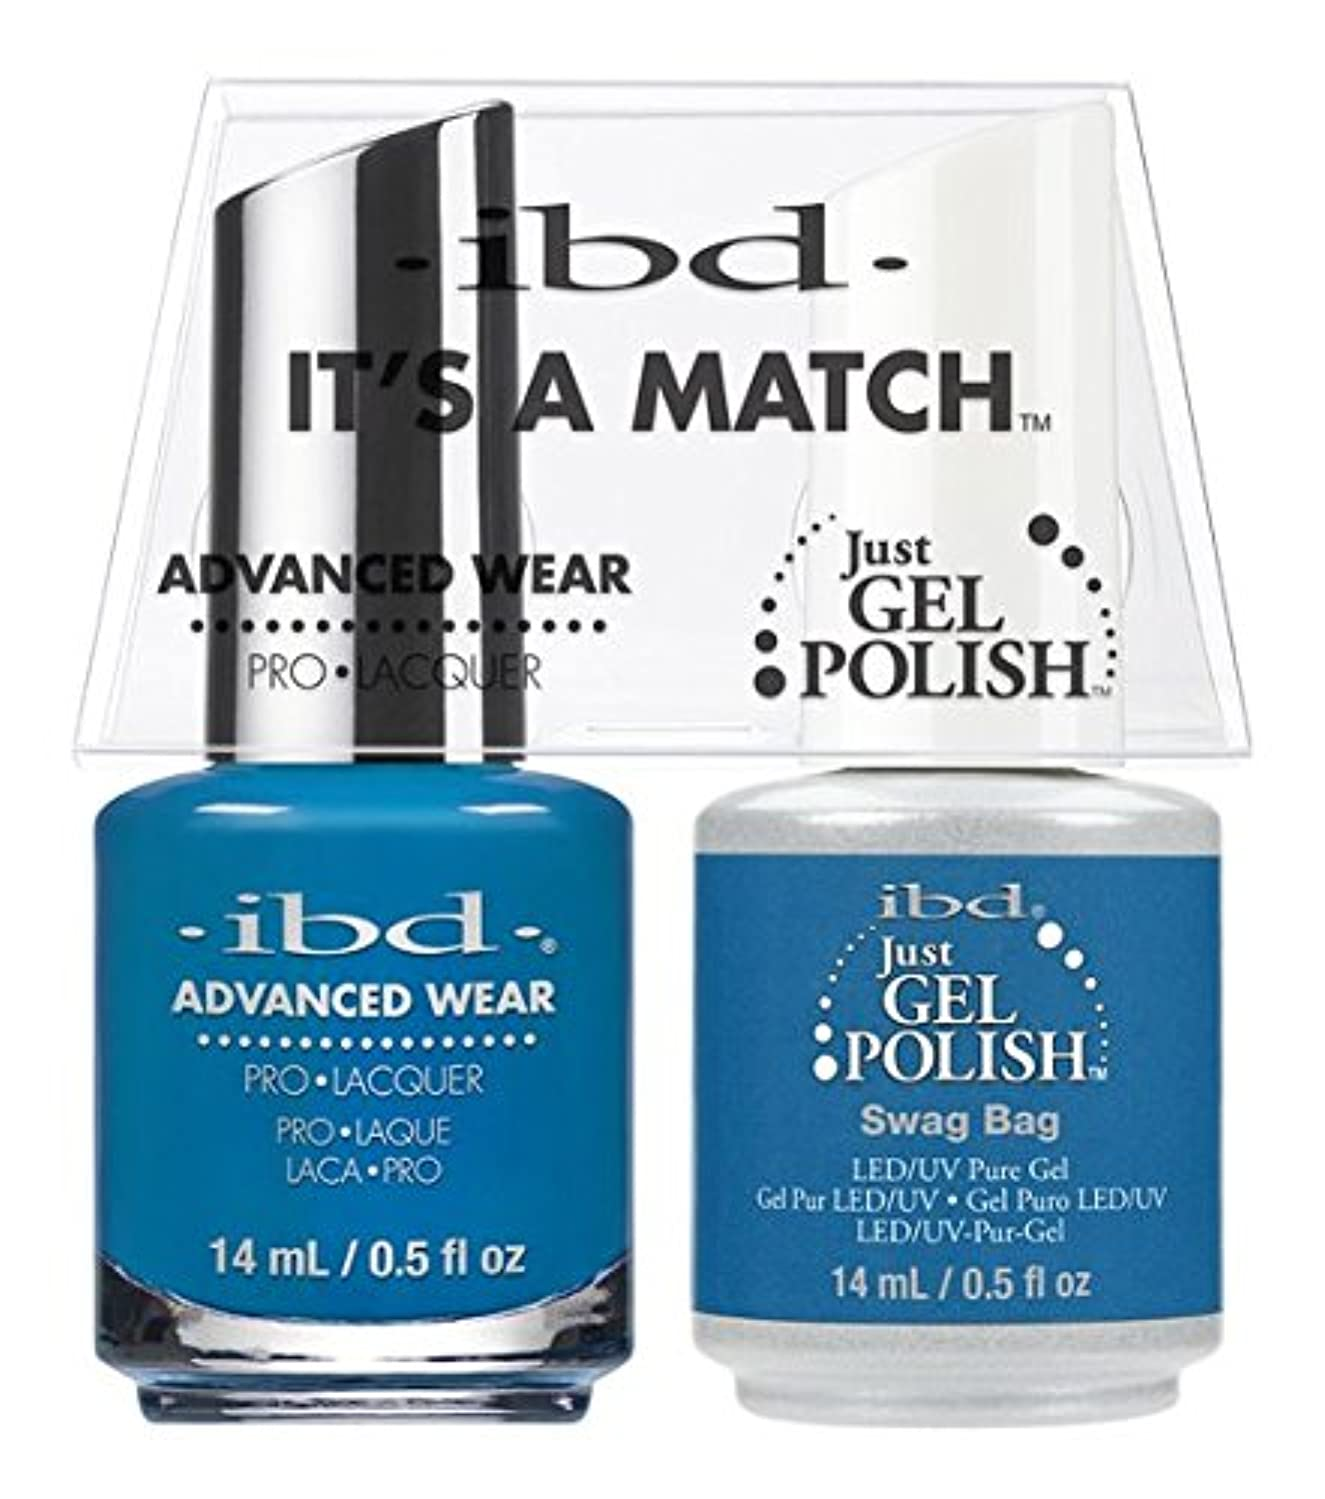 モチーフ襲撃衝突するibd - It's A Match -Duo Pack- Swag Bag - 14 mL / 0.5 oz Each